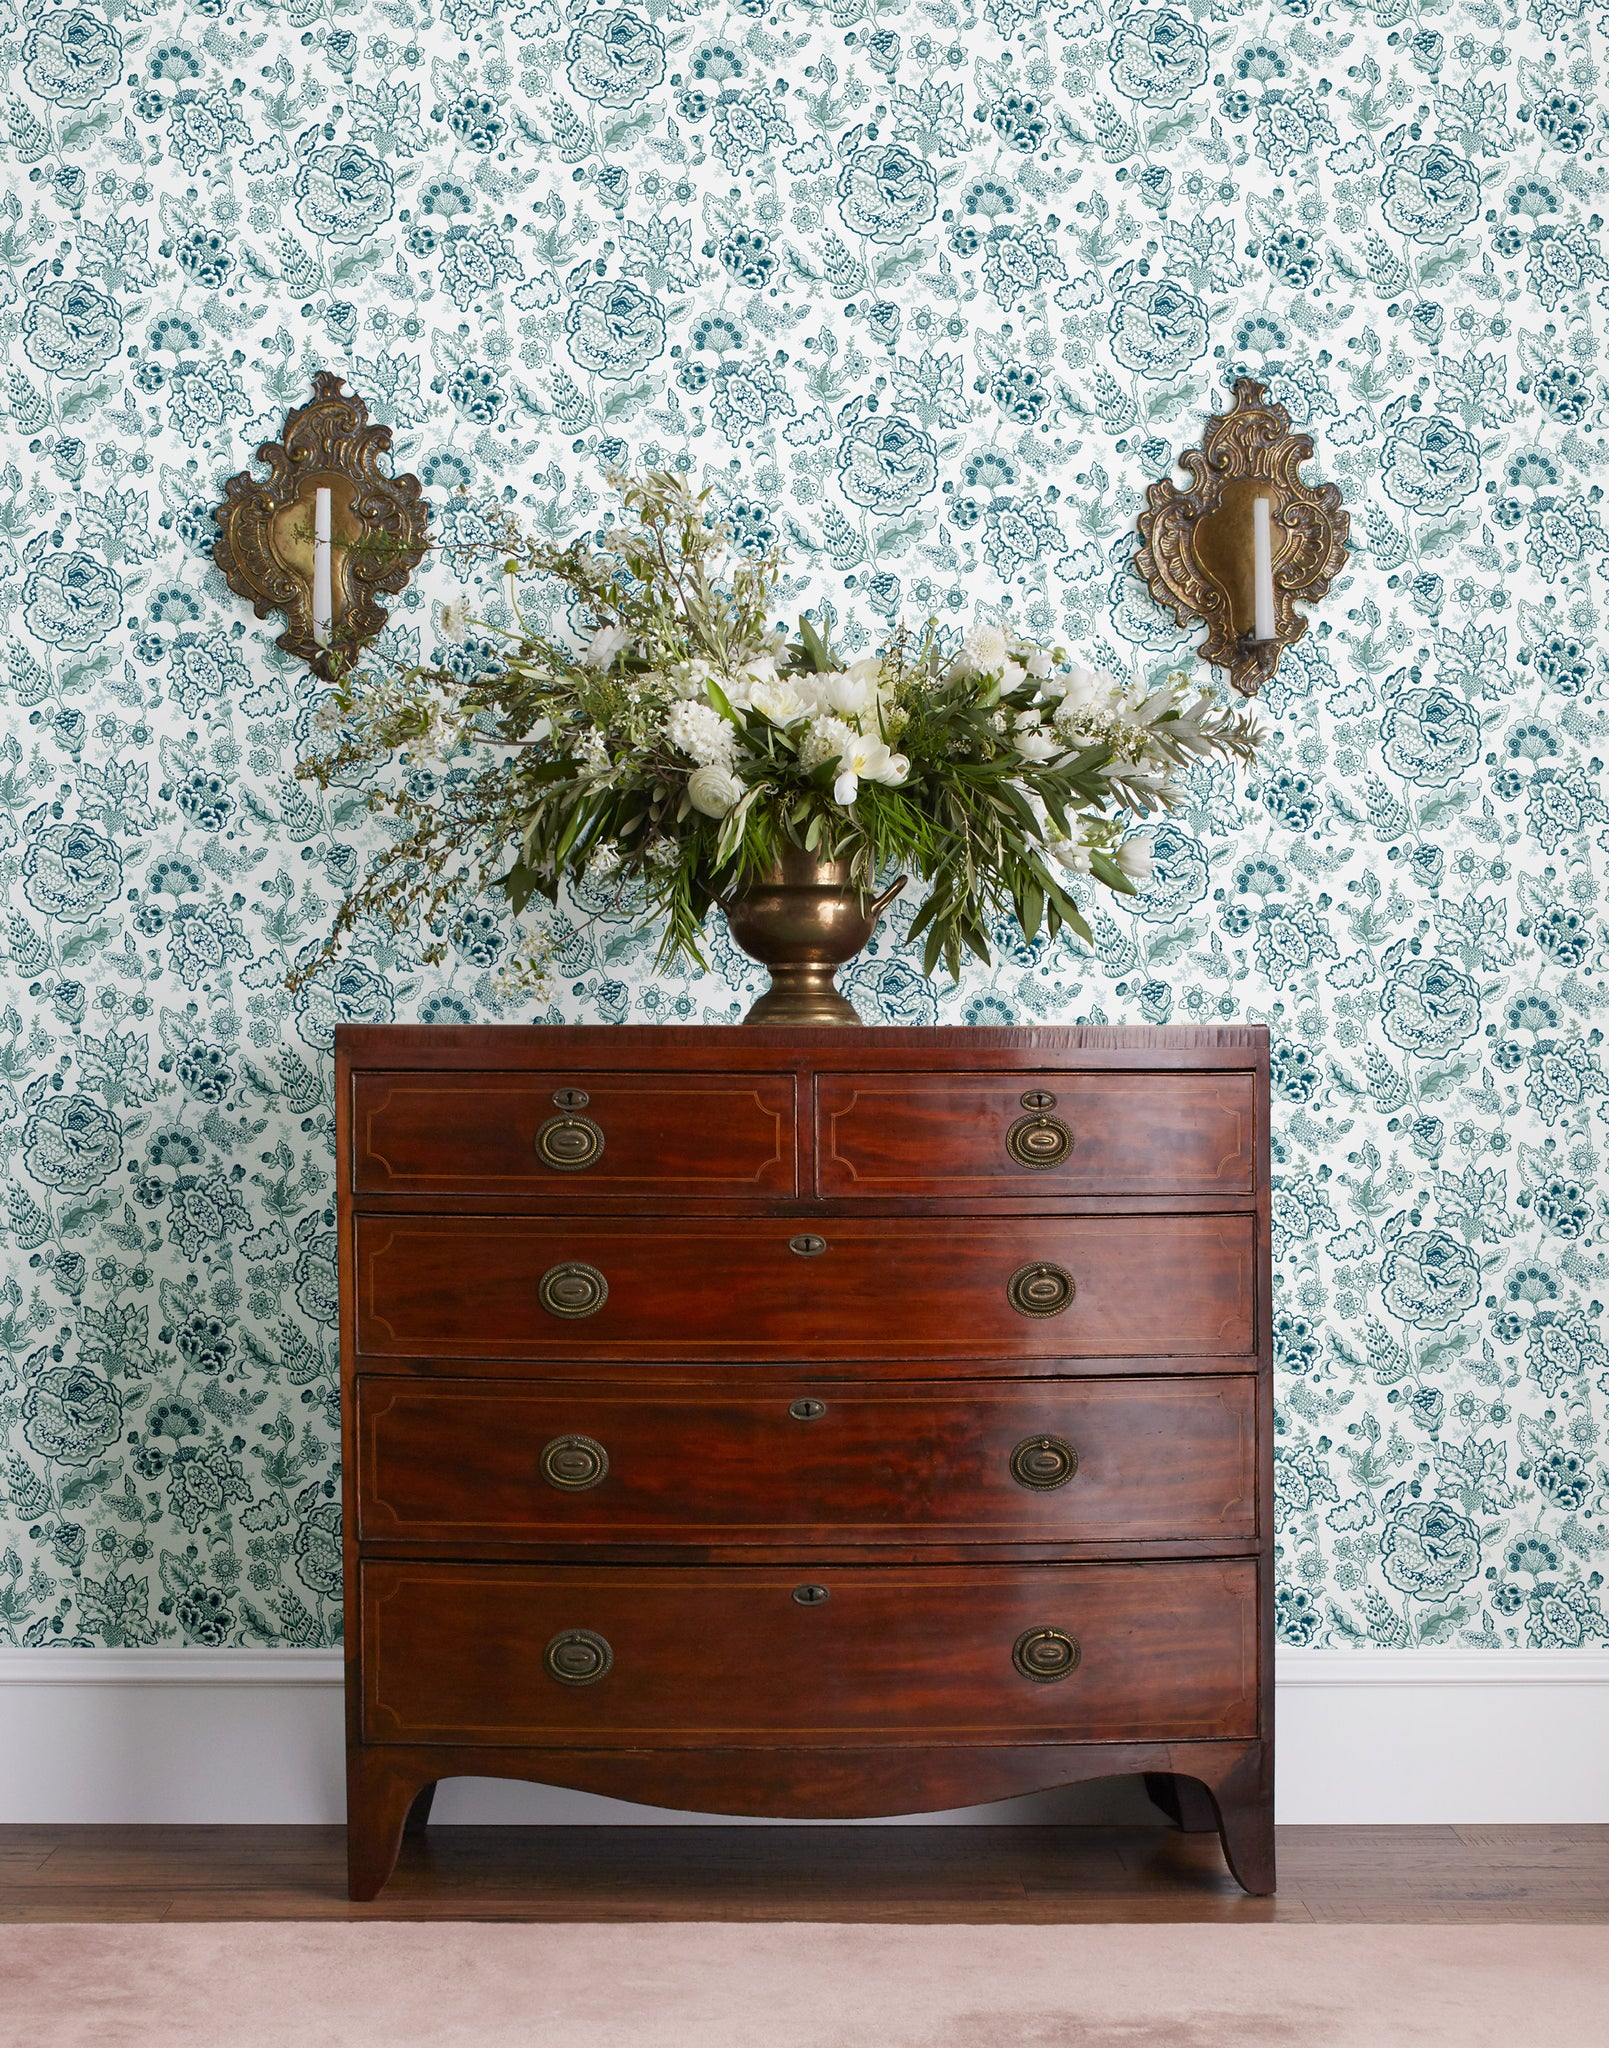 Tilton Fenwick Florebela (Laurel) Wallpaper